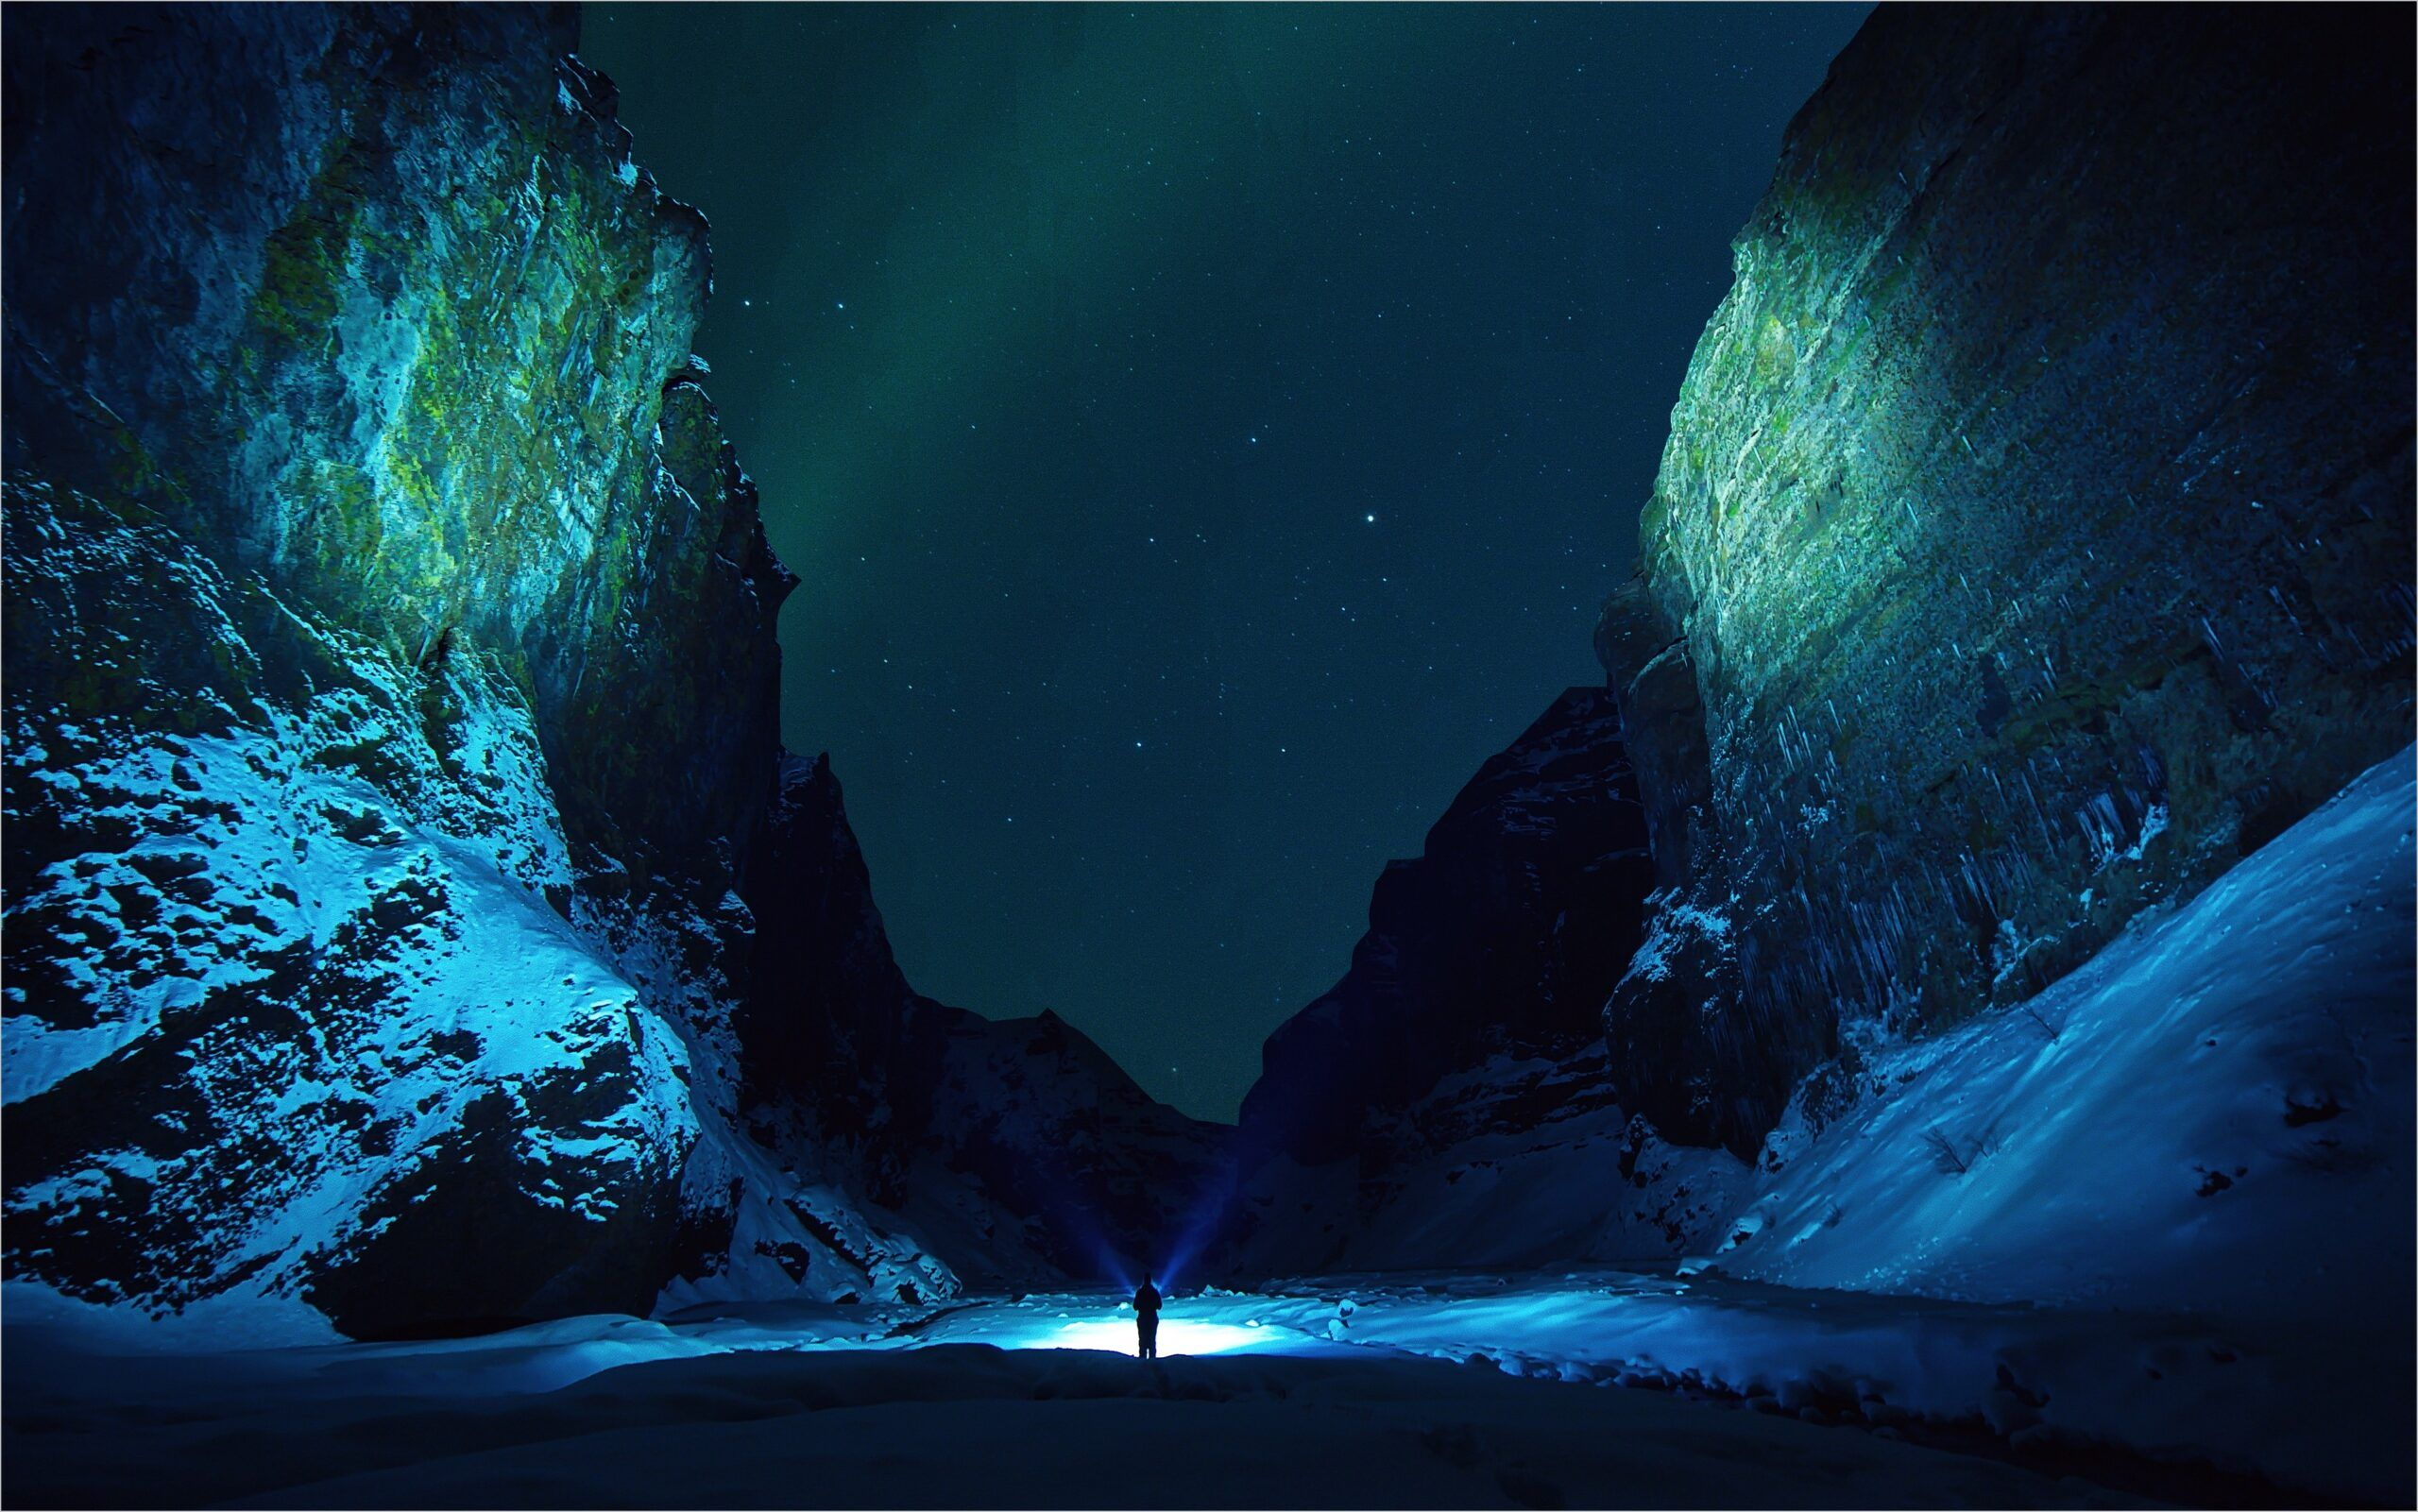 Snow Night 4k Wallpaper In 2020 Sky Photoshop Night Landscape Photography Sky Pictures